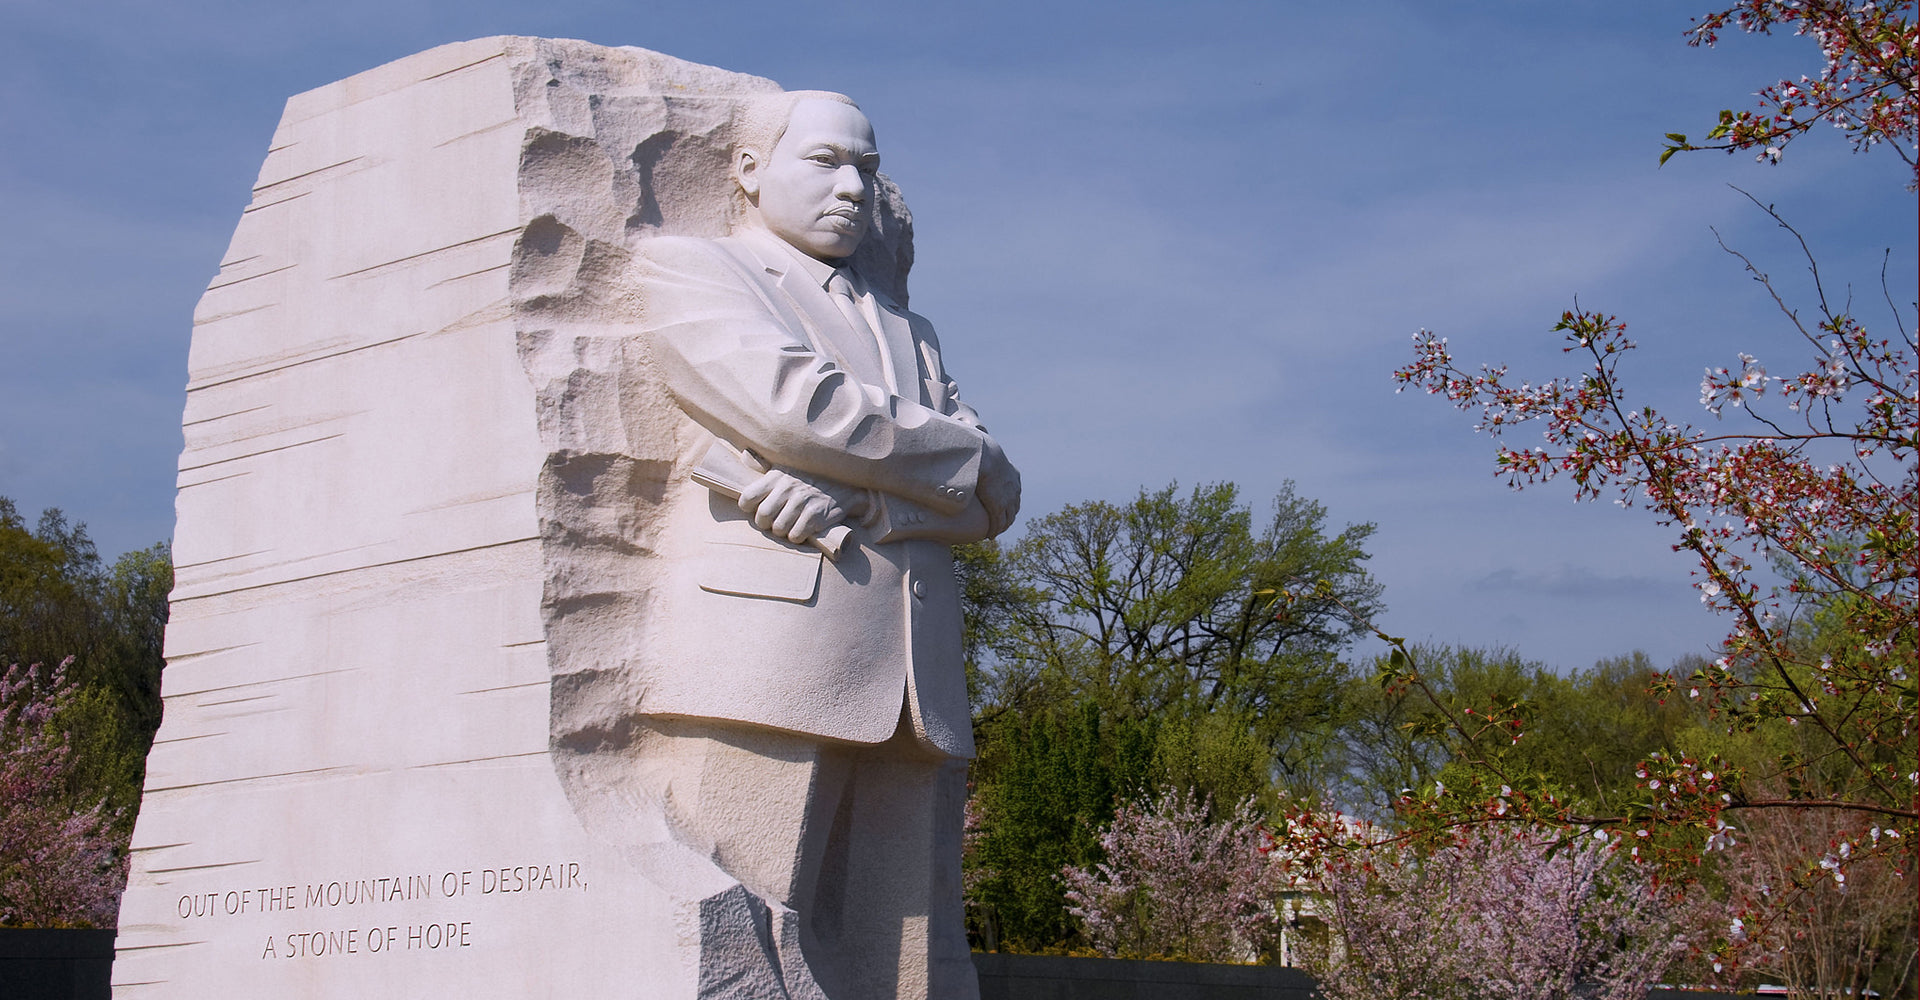 Martin Luther King Stone of Hope